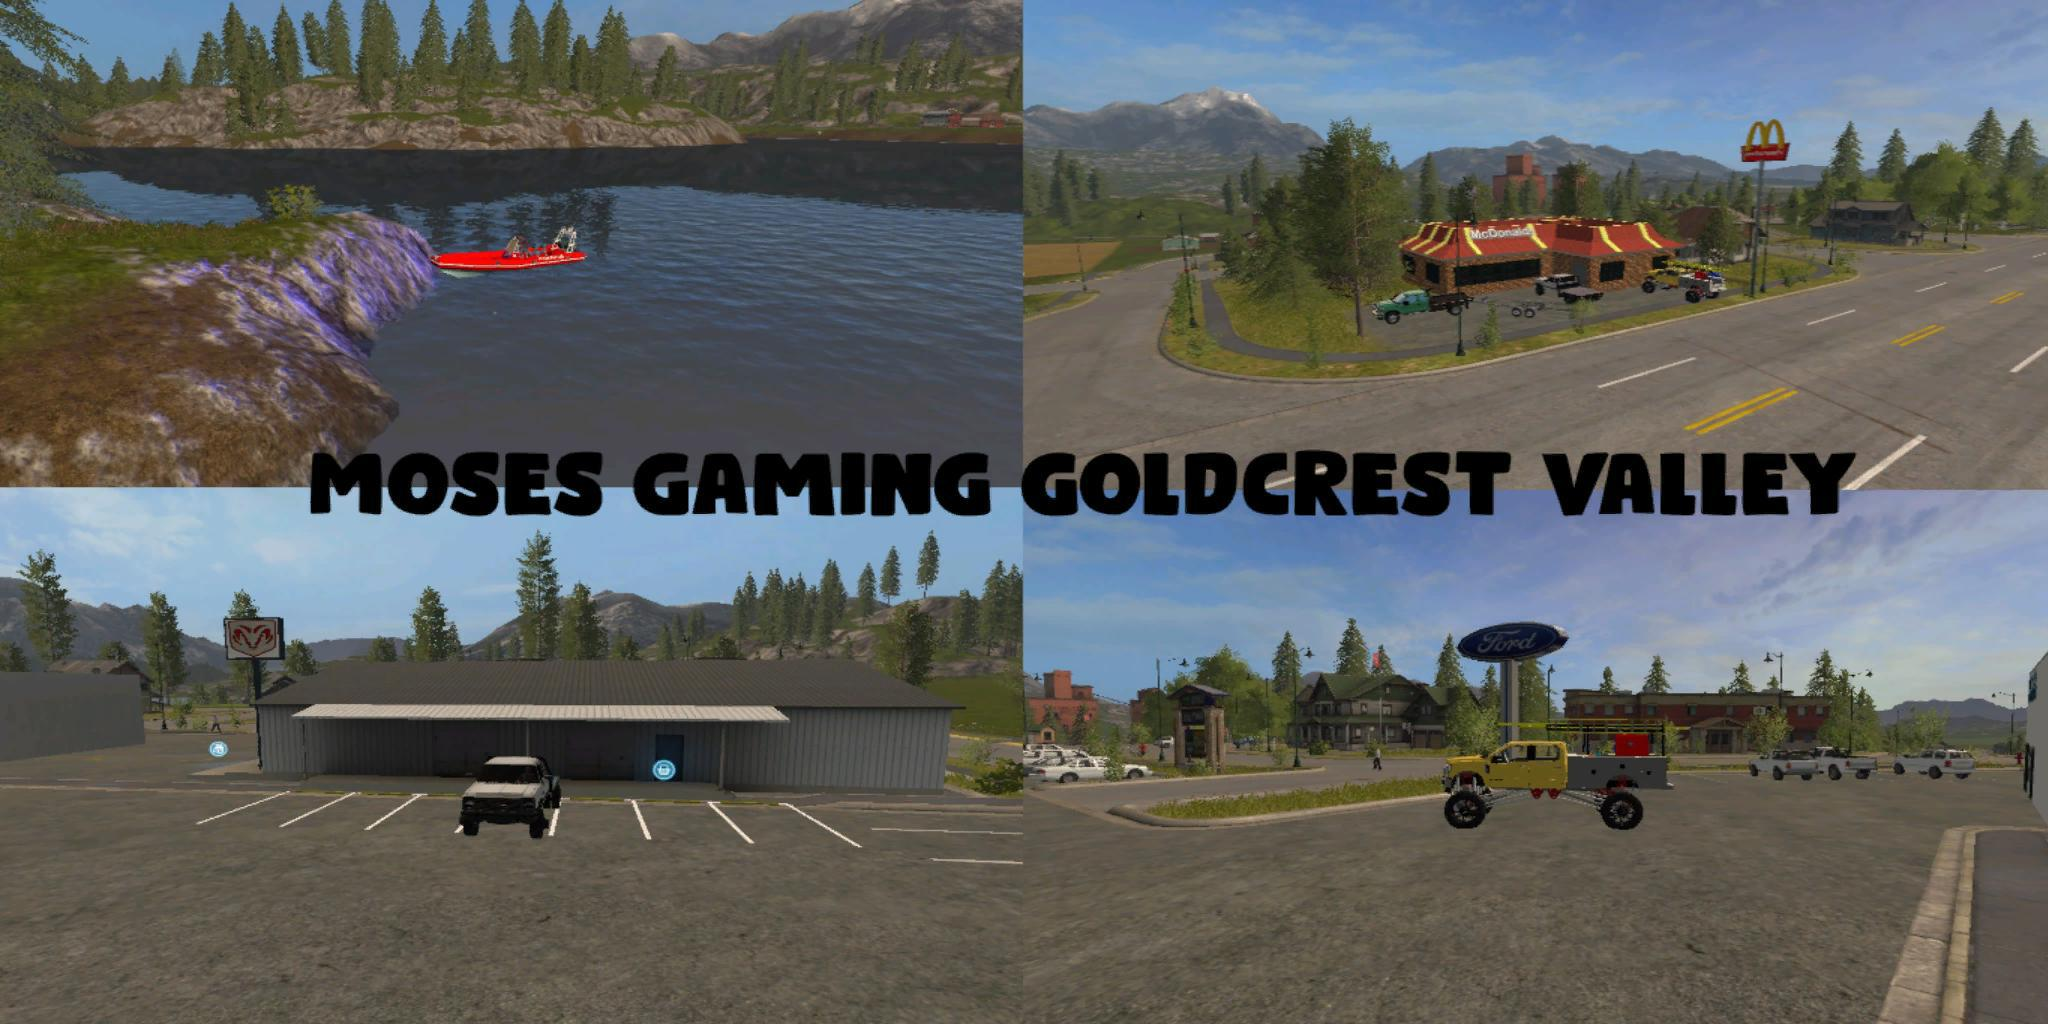 Moses Gaming goldcrest valley v1.0